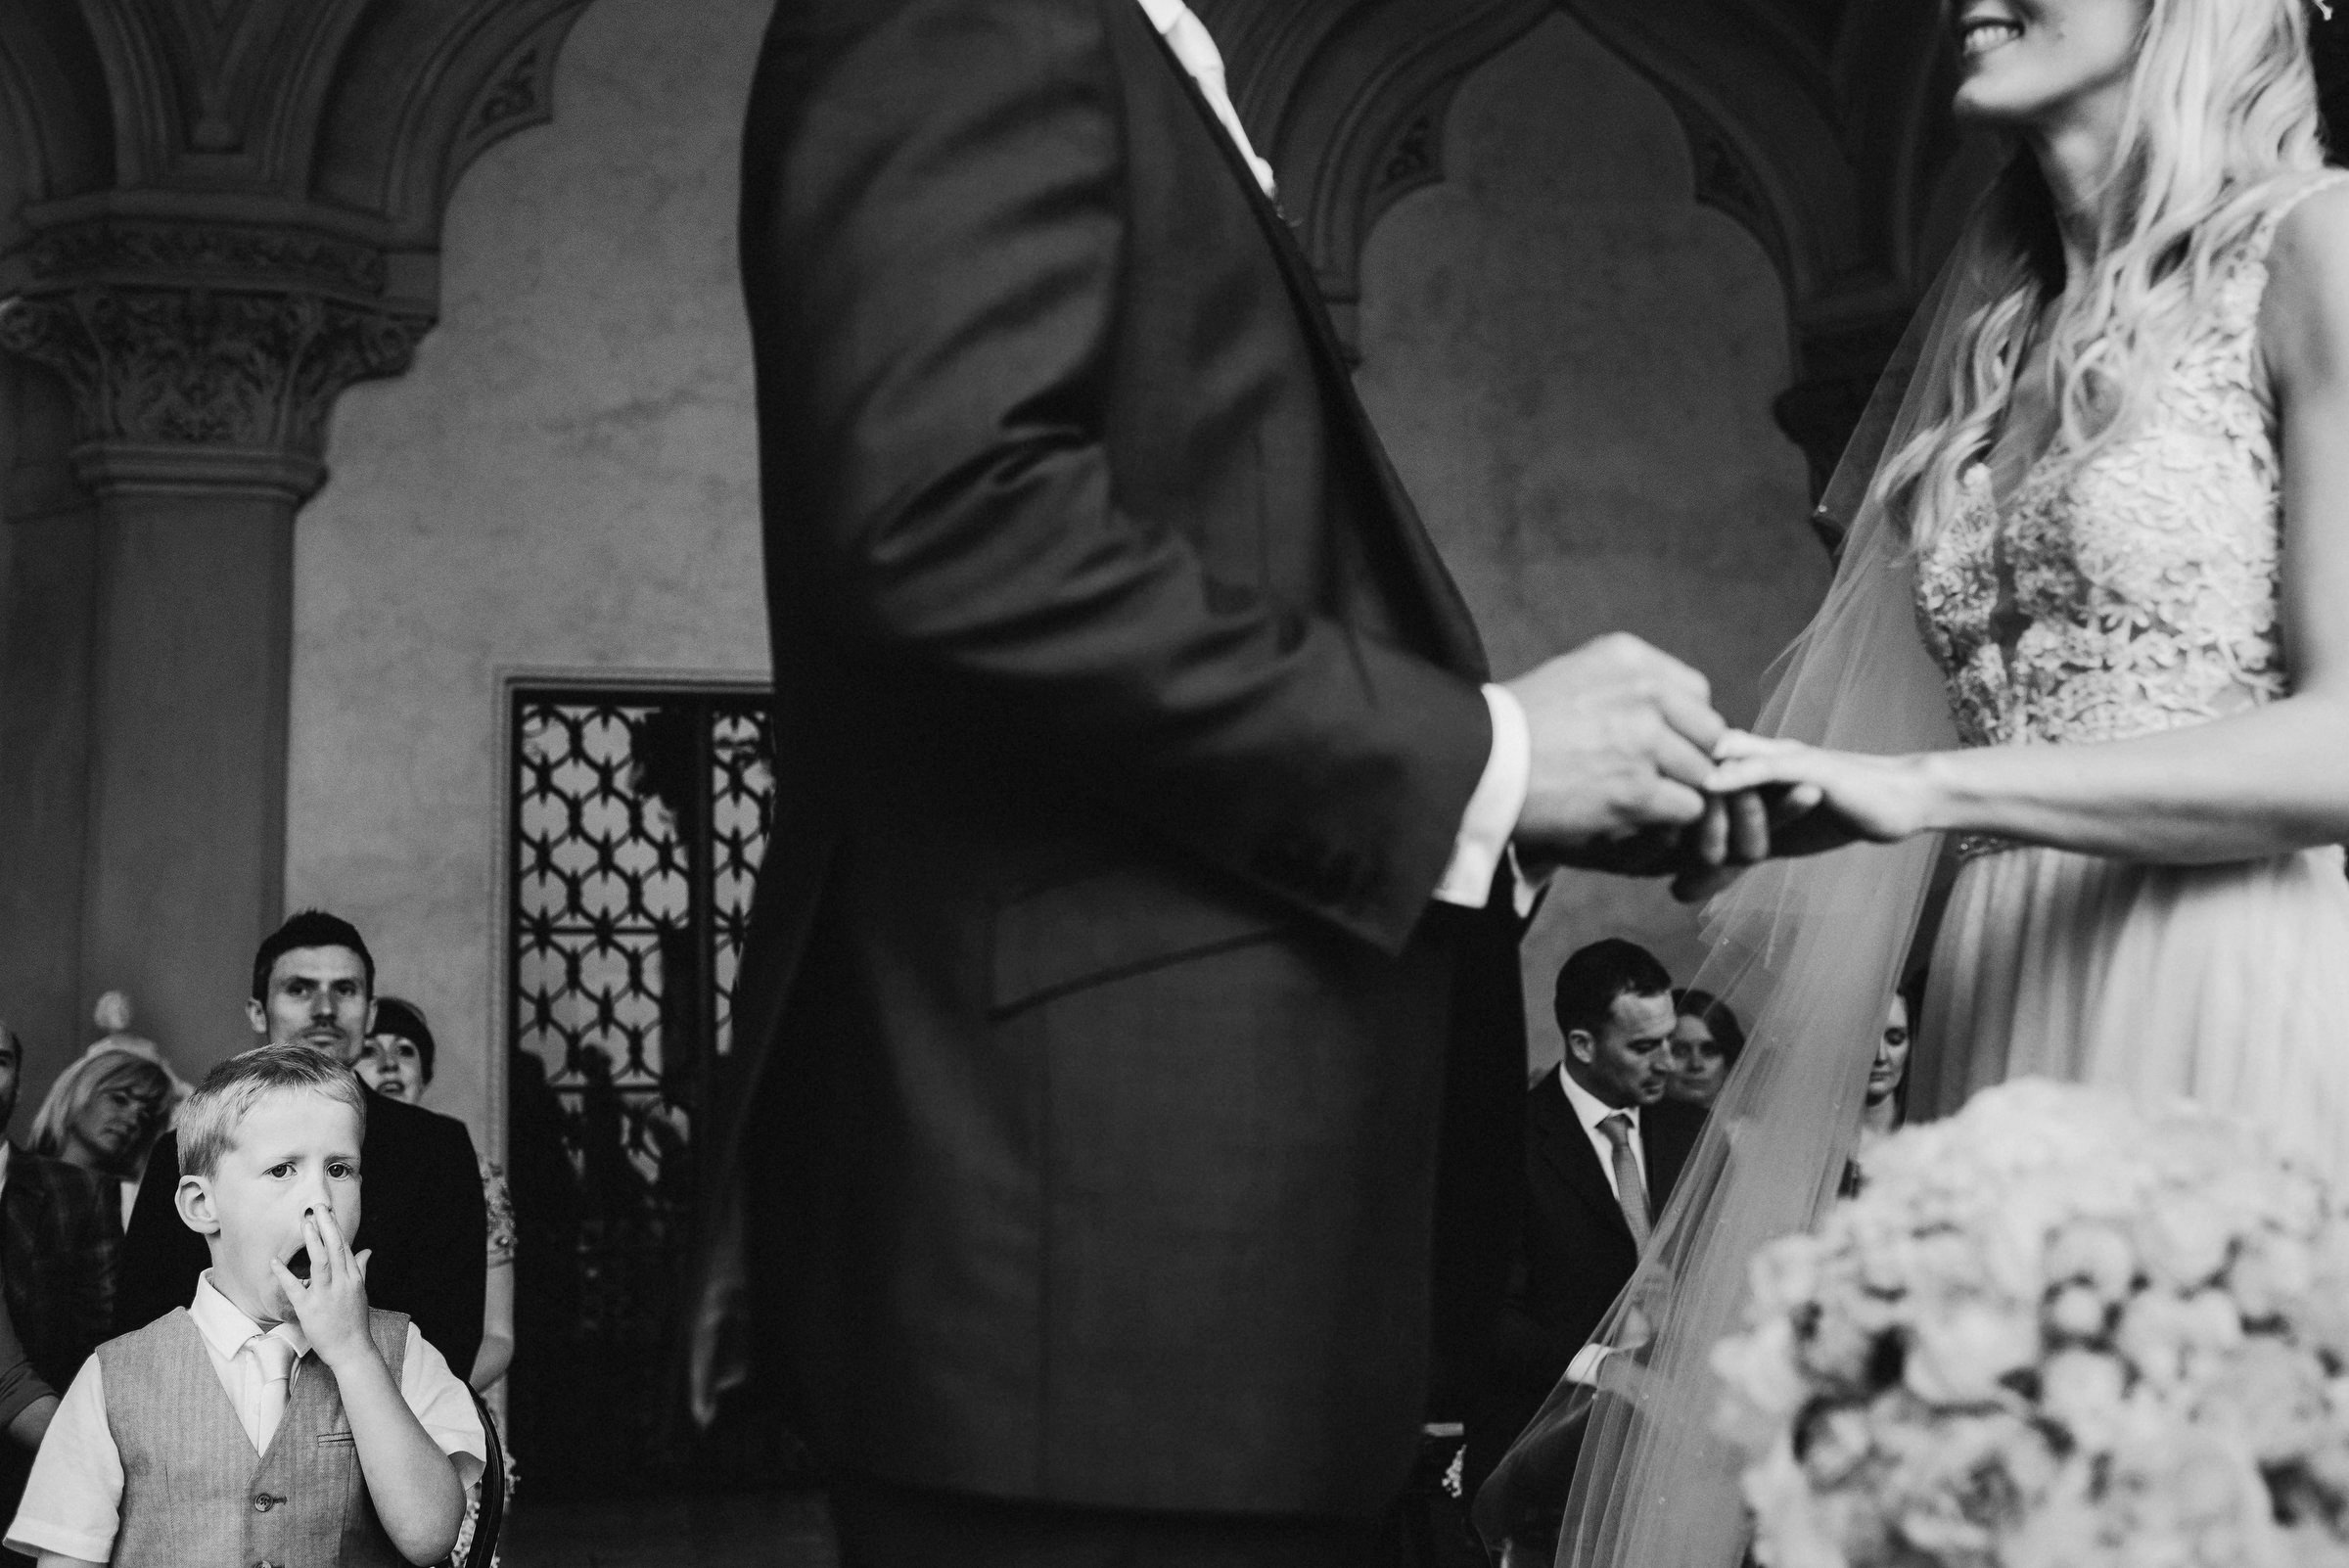 Little guest yawns during wedding ceremony photo by Andy Gaines Photography